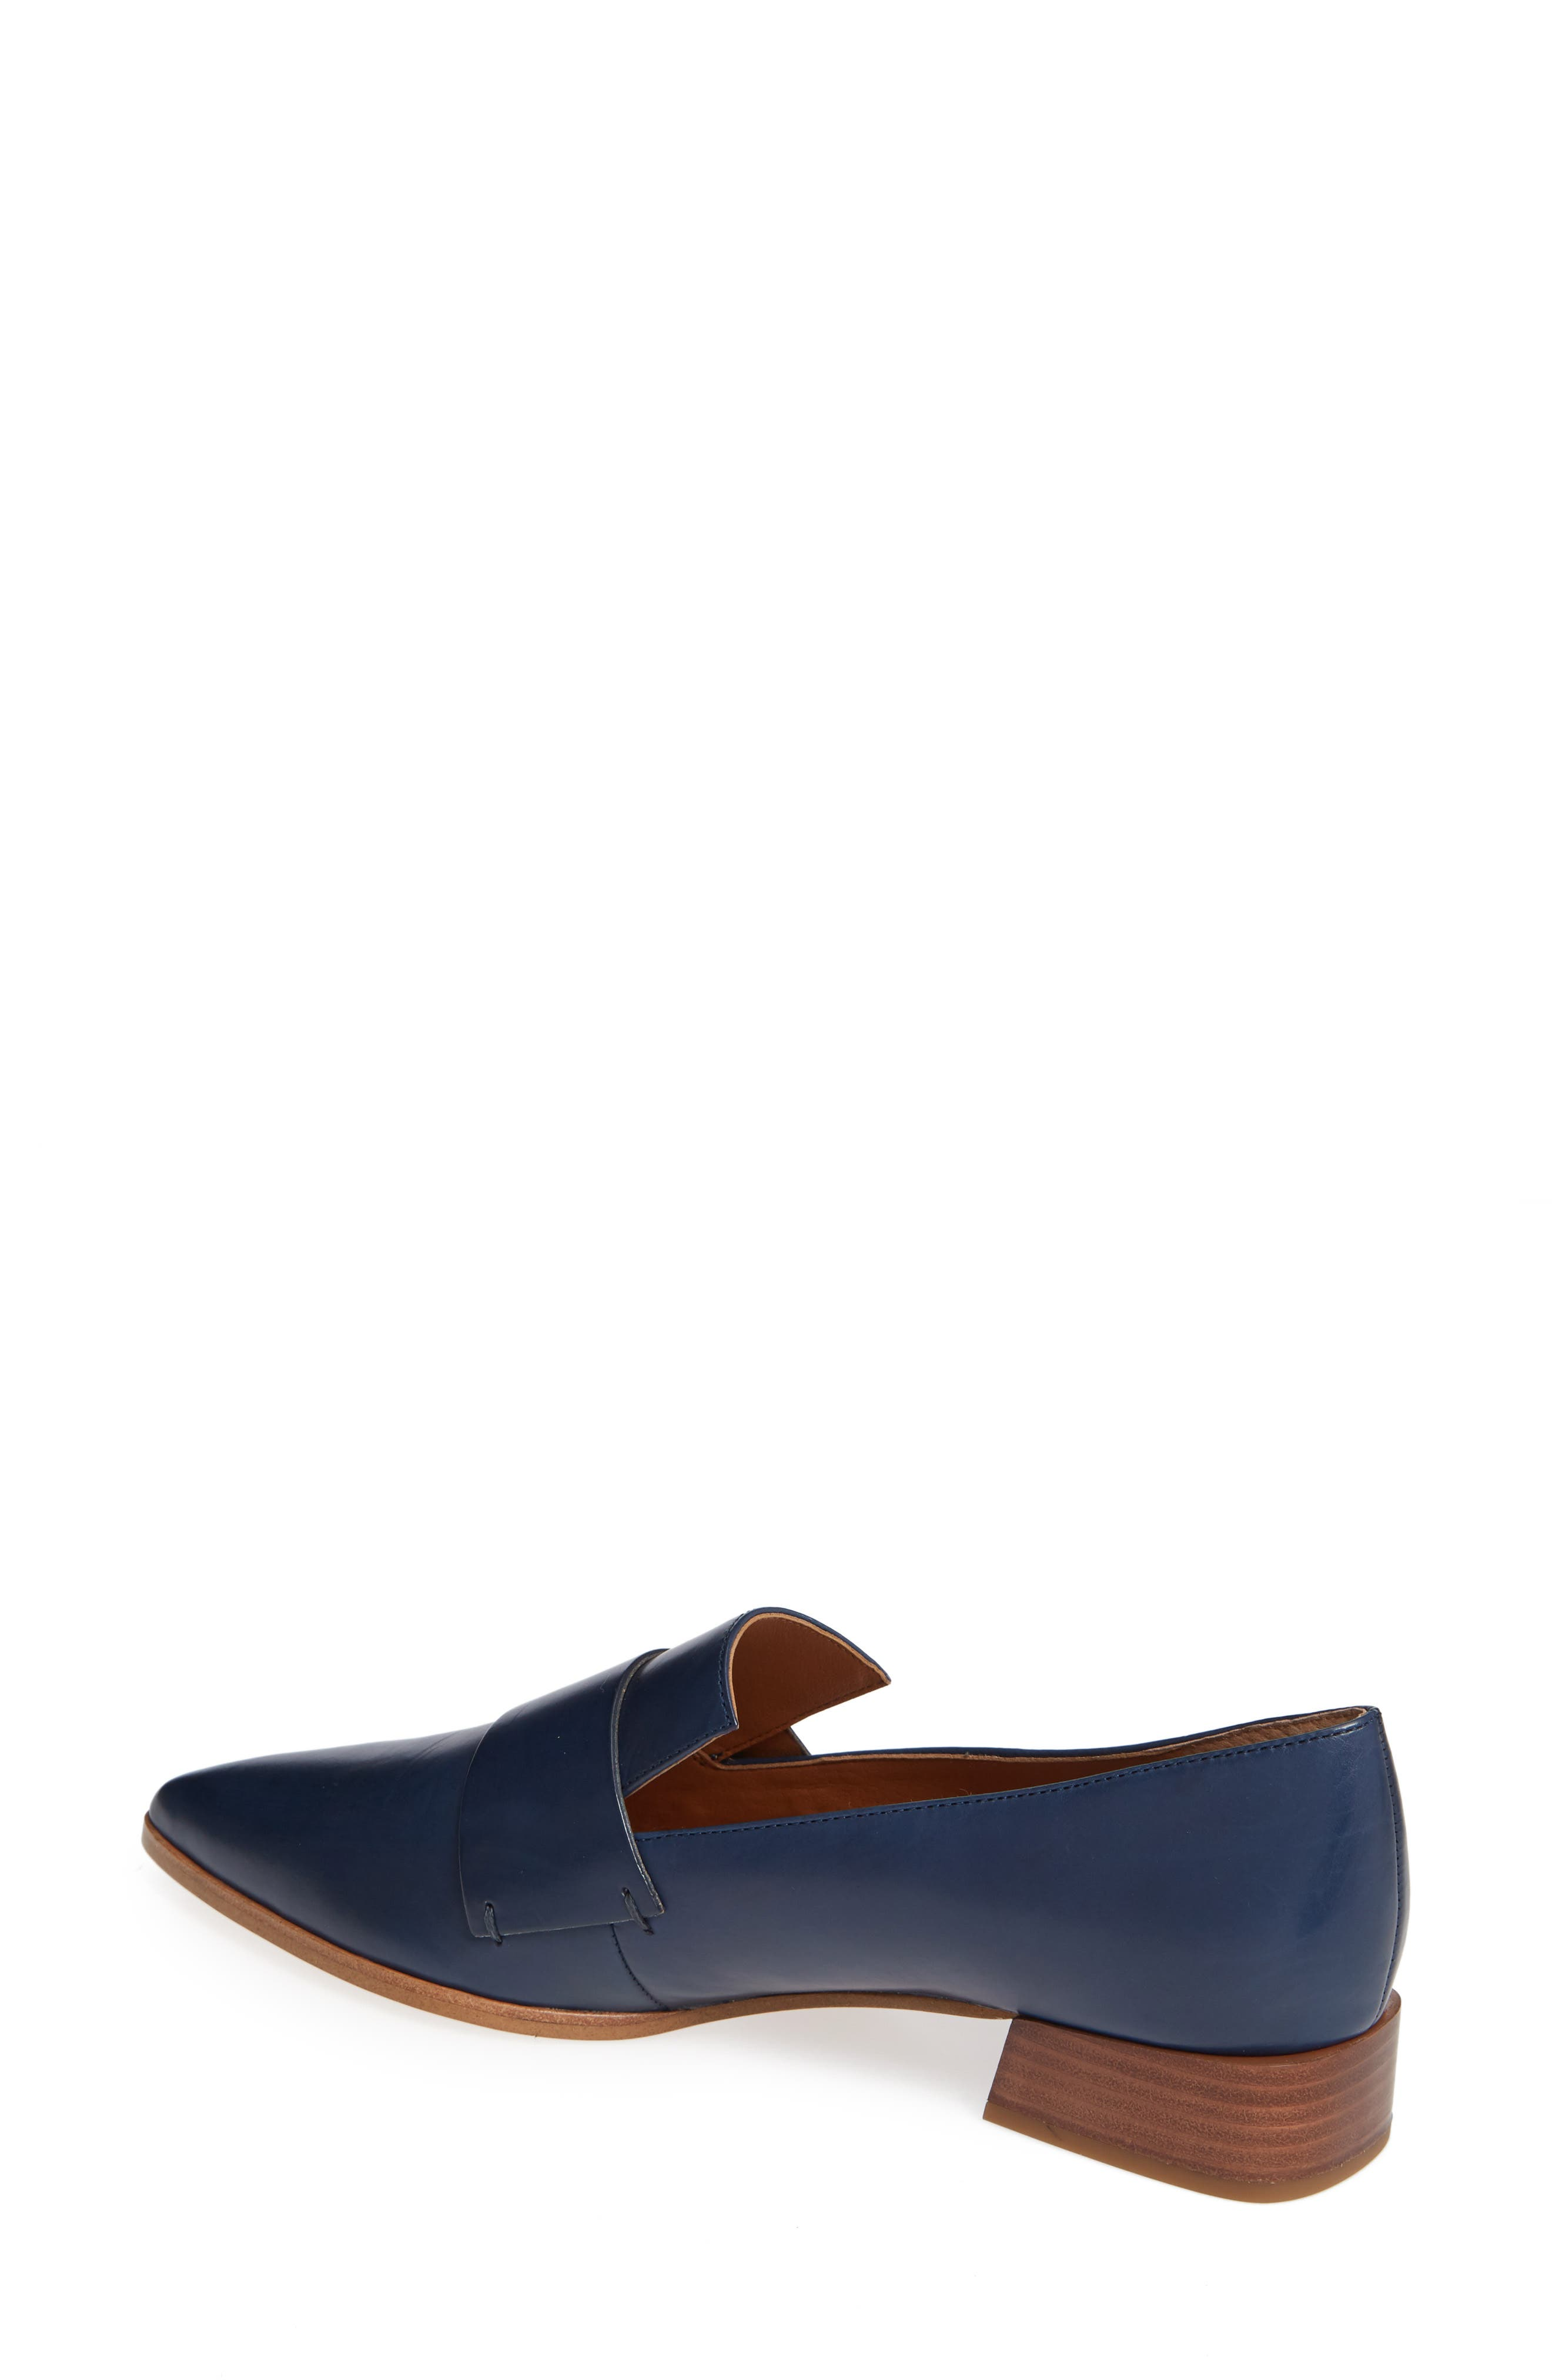 Nebby 2 Pointy Toe Loafer,                             Alternate thumbnail 2, color,                             NAVY LEATHER